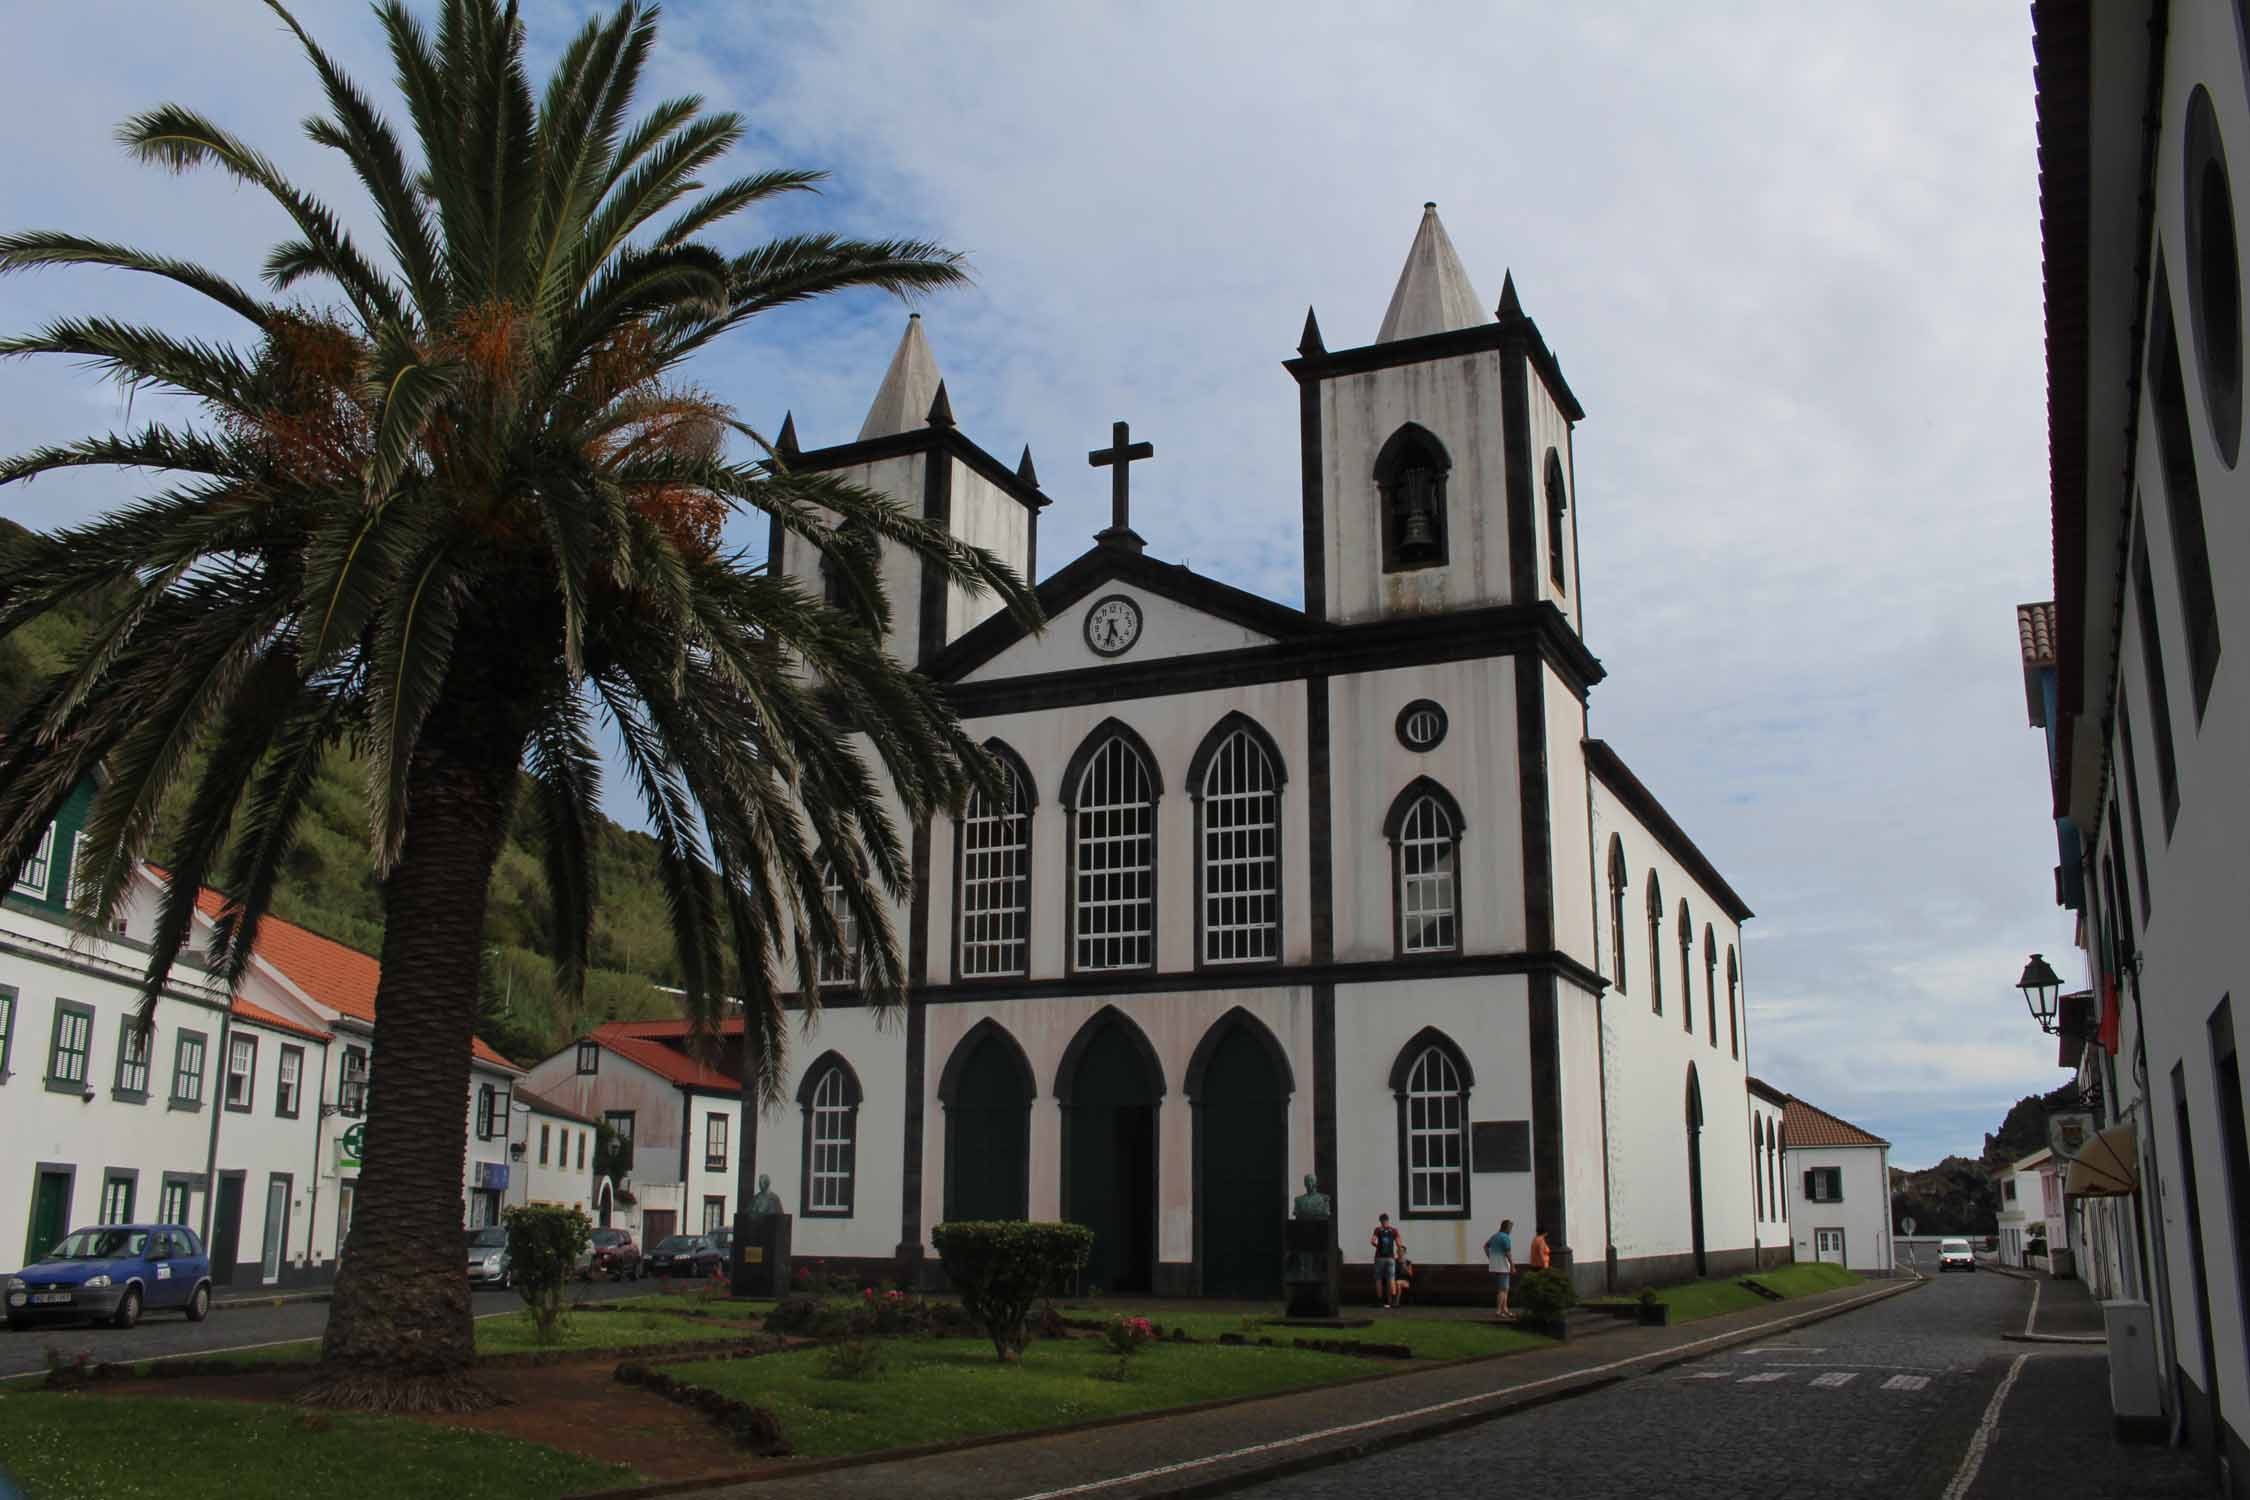 A church in Lajes do Pico, Pico Island, Azores